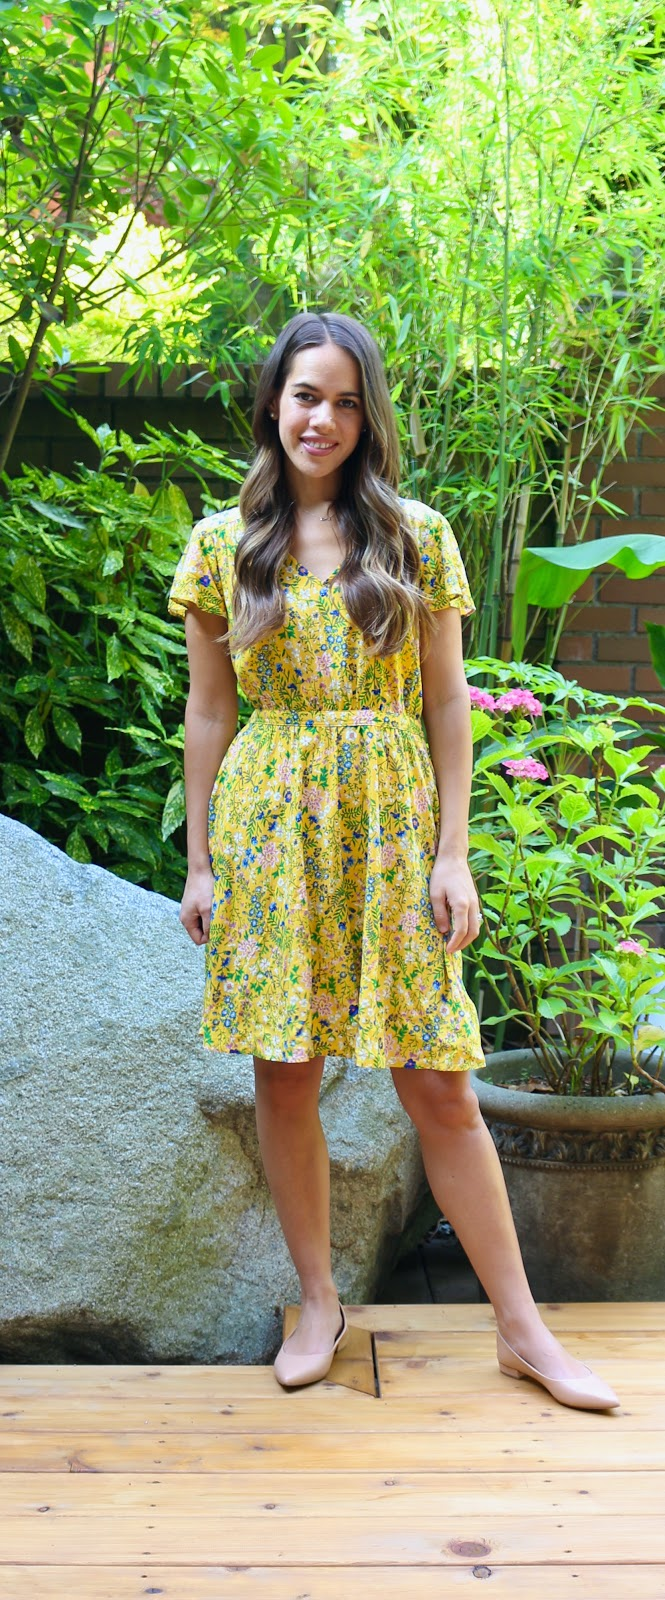 Jules in Flats - Yellow Floral V-Neck Dress (Business Casual Workwear on a Budget)